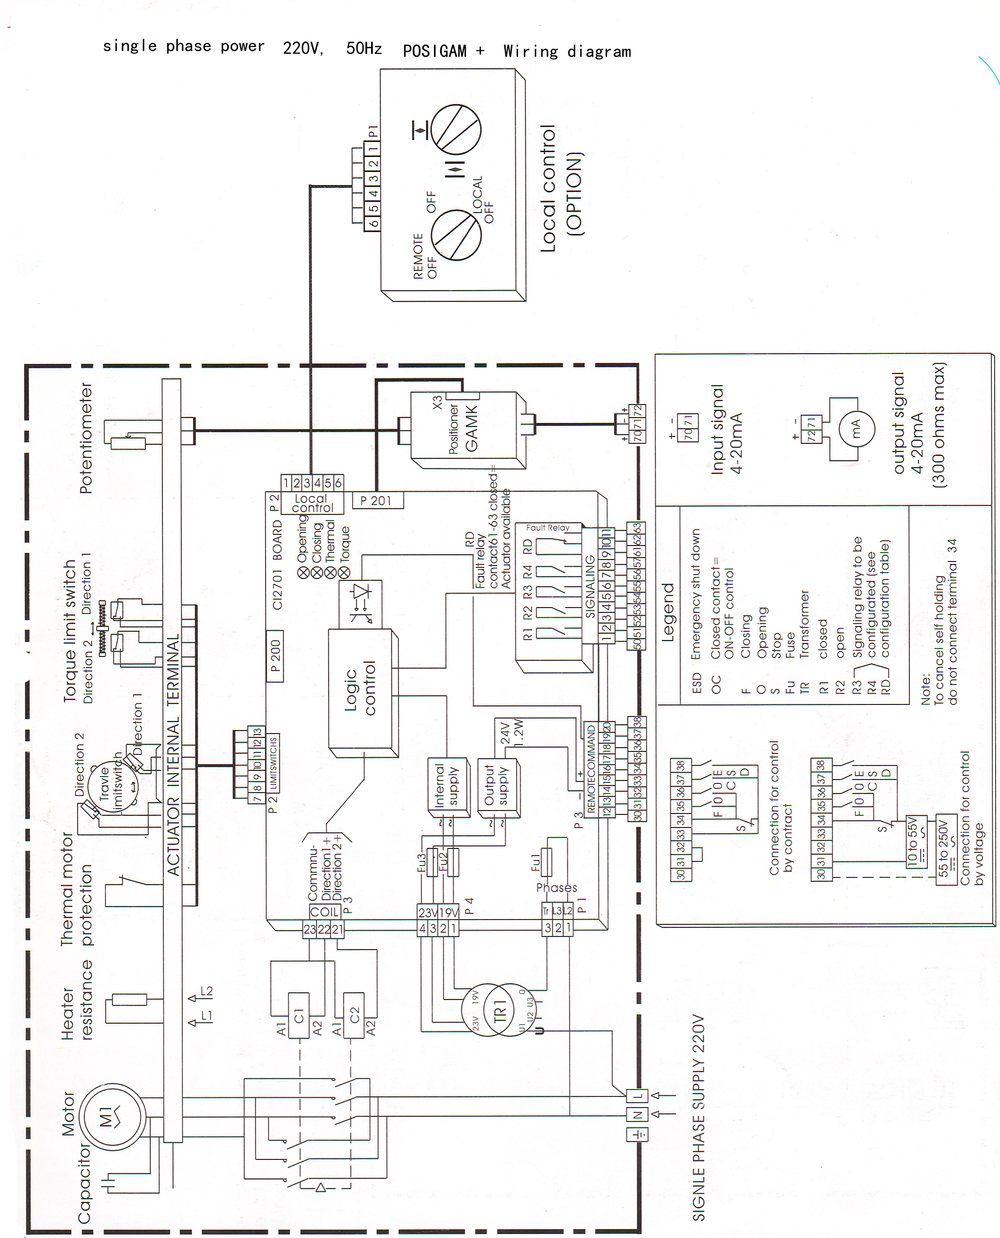 honeywell eim wiring diagram honeywell pro 8000 wiring